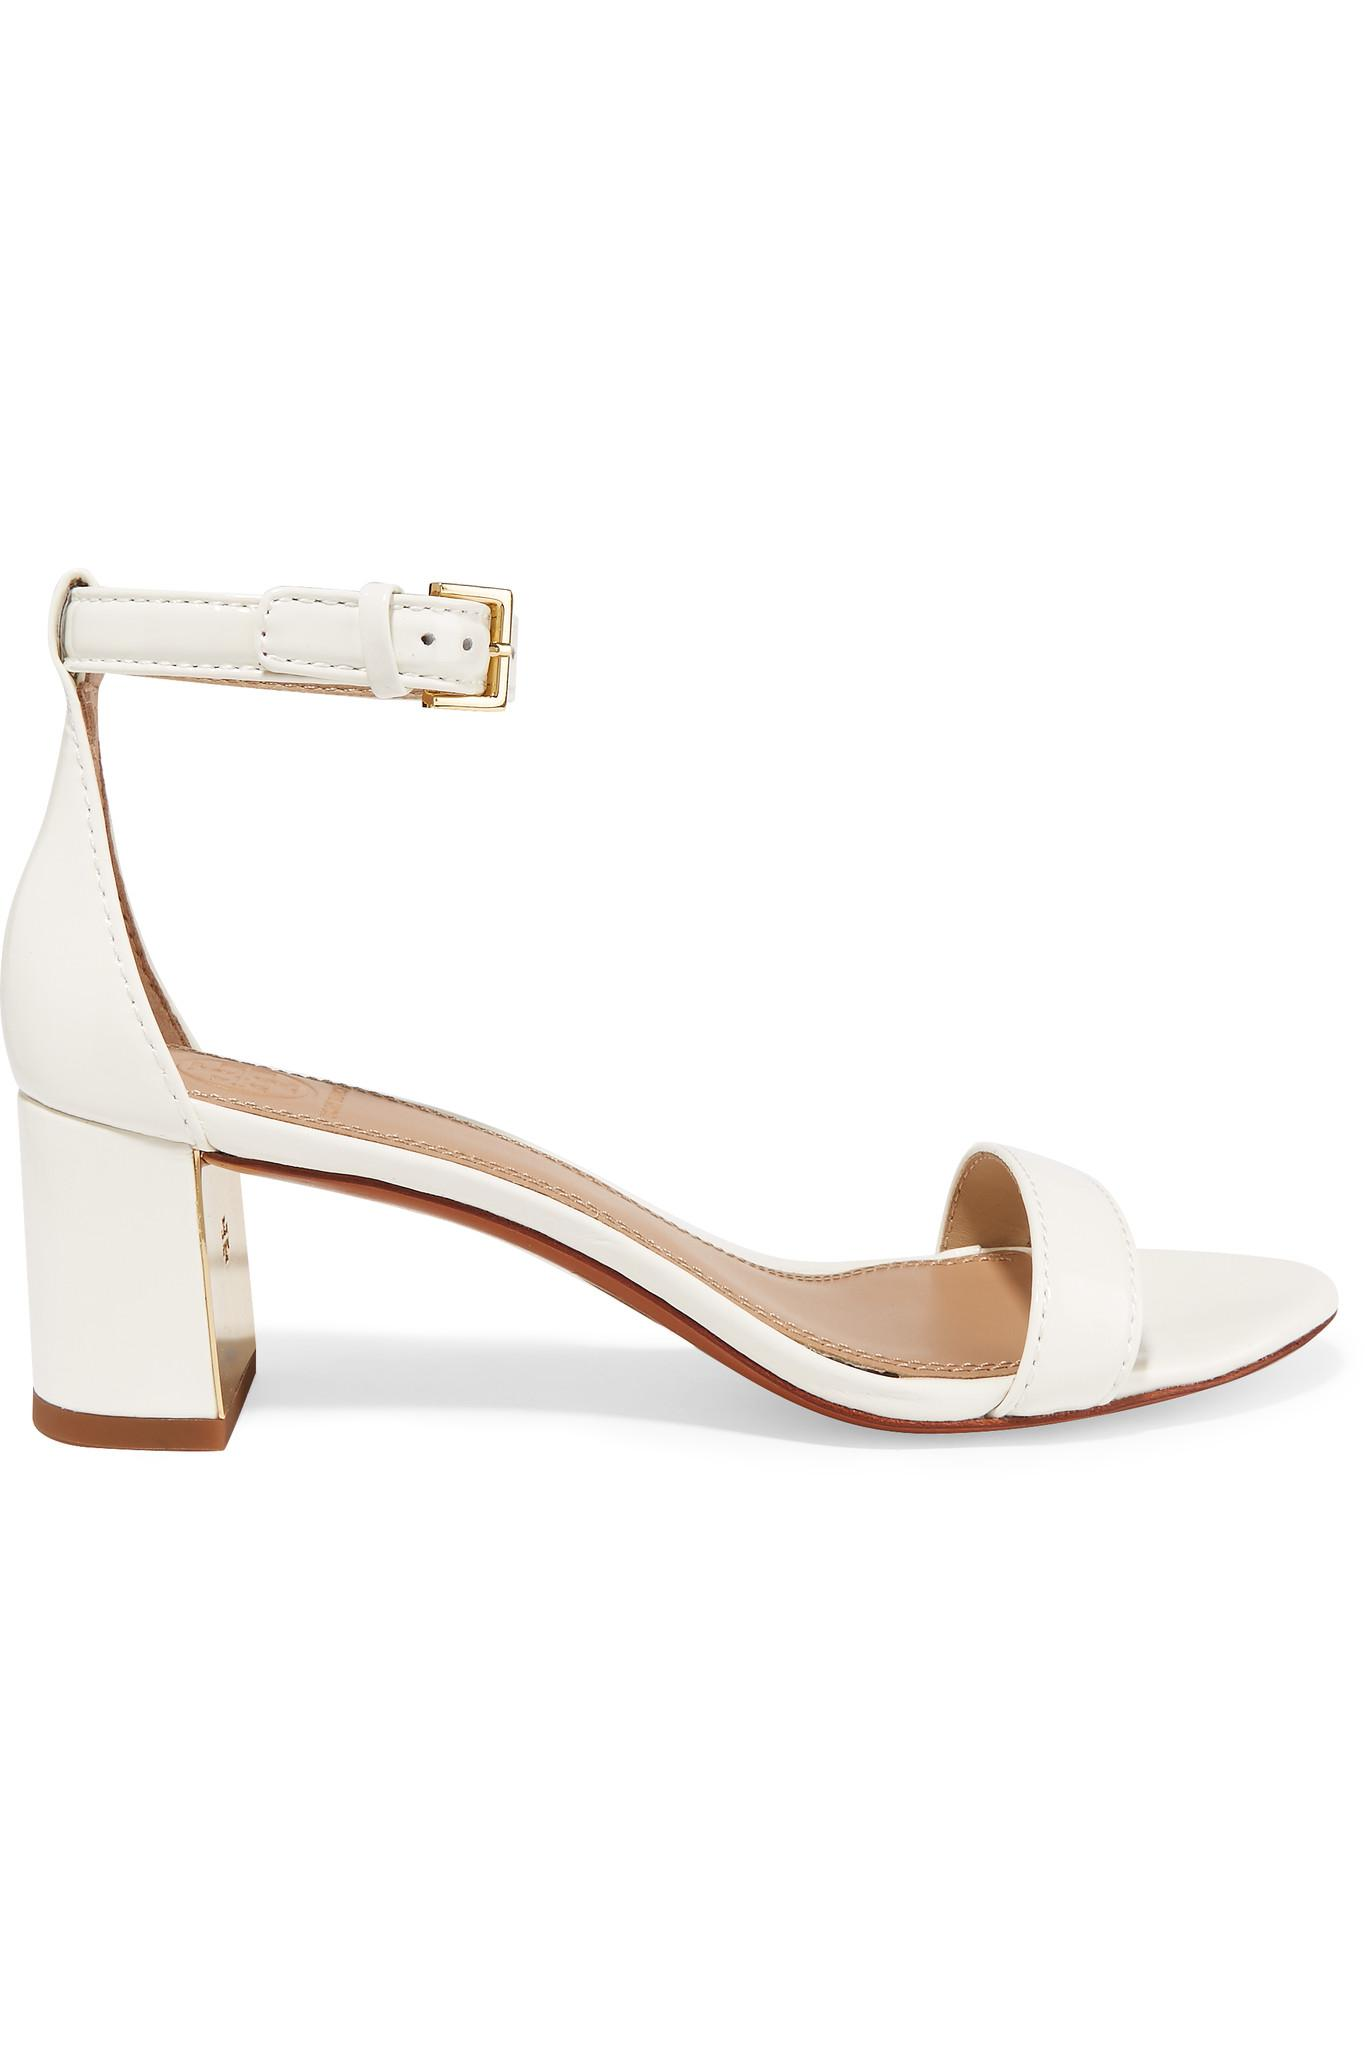 3dbf15734e468c Lyst - Tory Burch Cecile Patent-leather Sandals in White